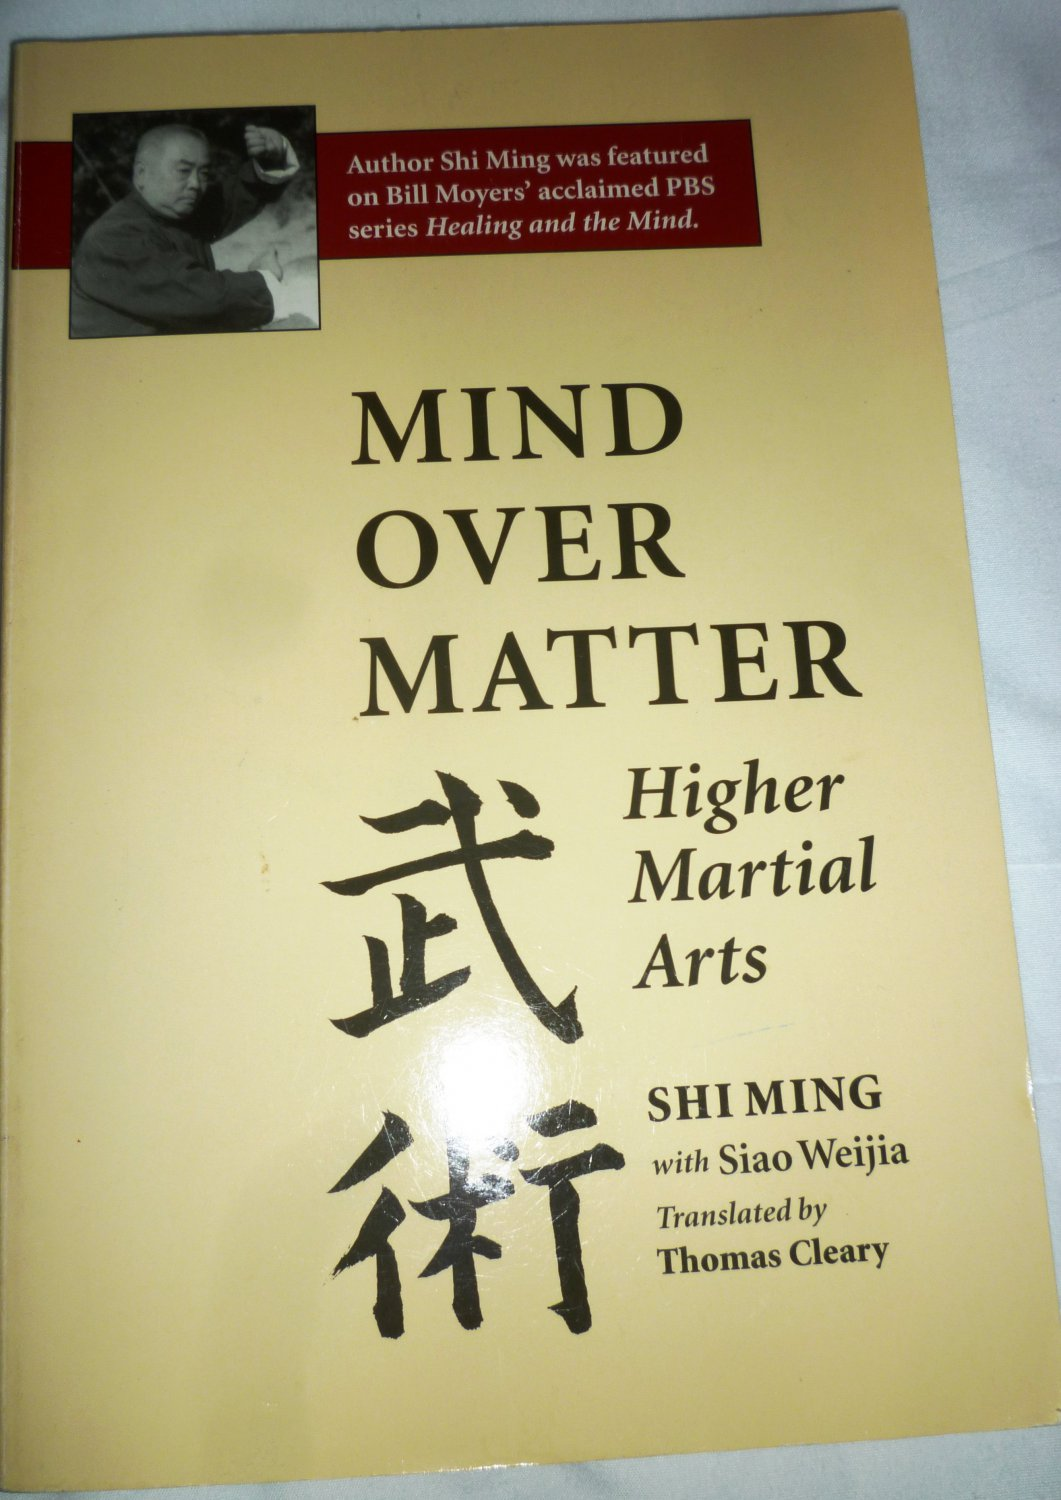 MIND OVER MATTER HIGHER MARTIAL ARTS SHIMING WITH SIAO WEIJIA